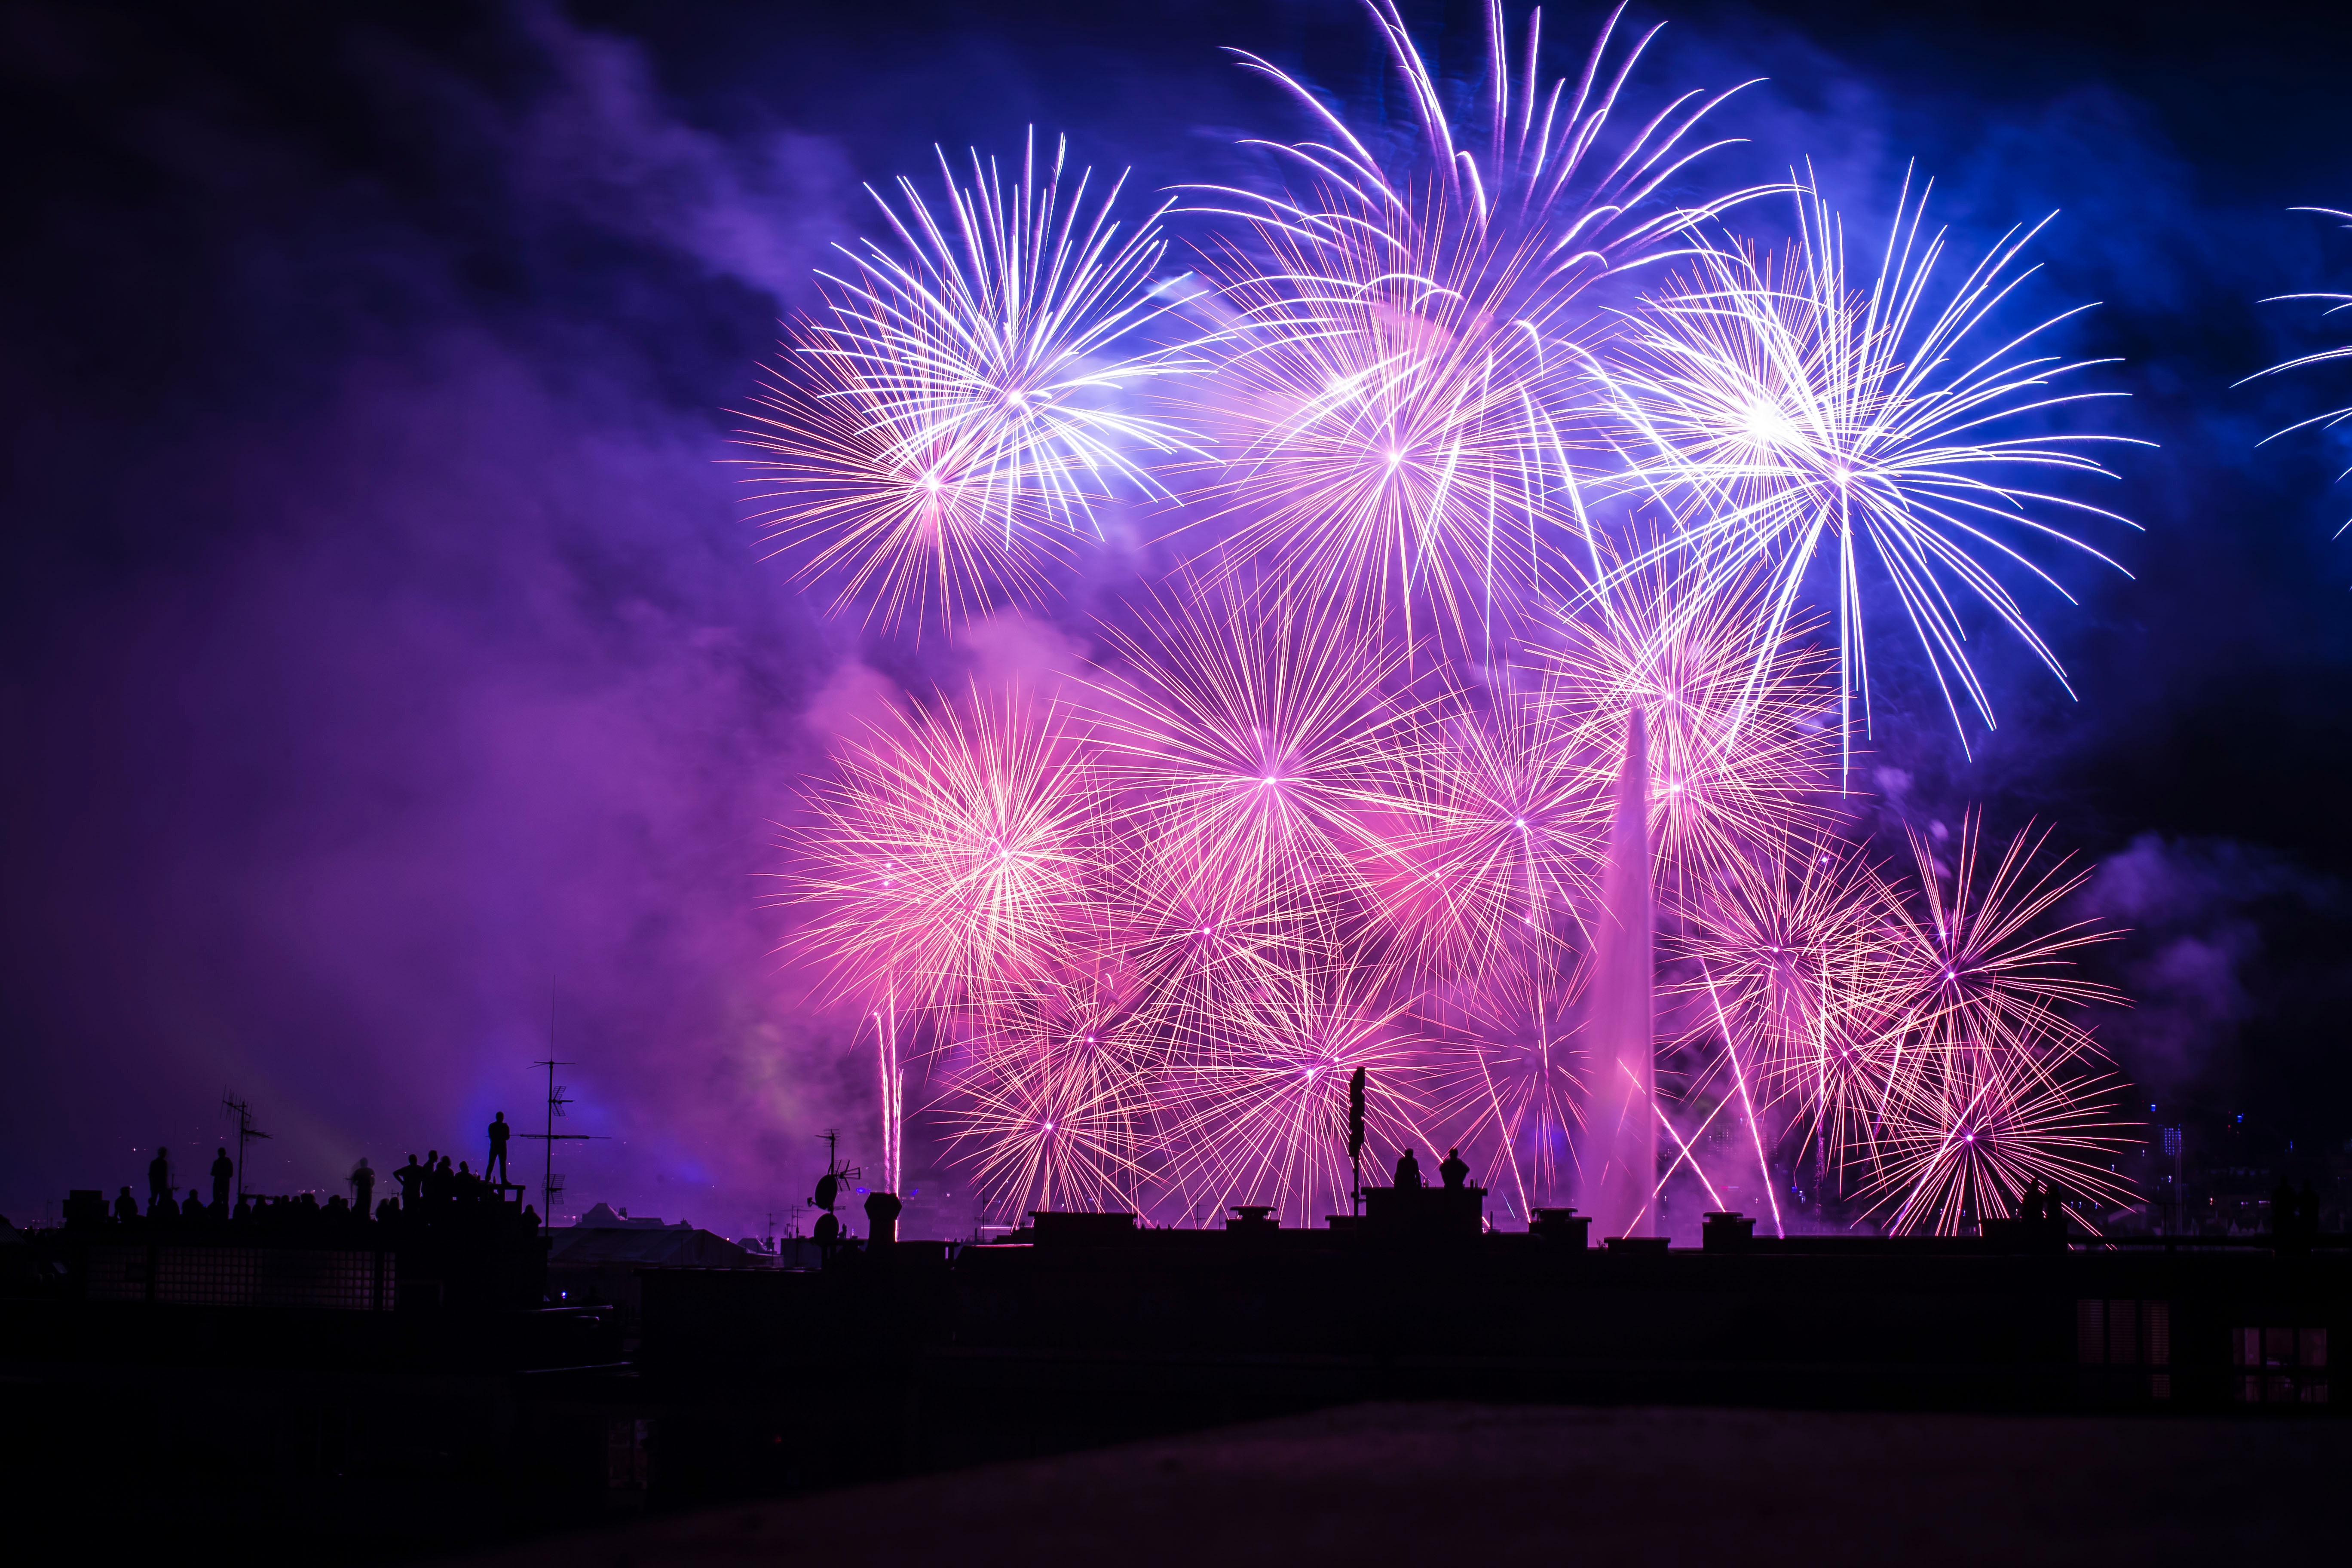 111327 download wallpaper Holidays, Night, Salute, Handsomely, It's Beautiful, Fireworks, Firework screensavers and pictures for free